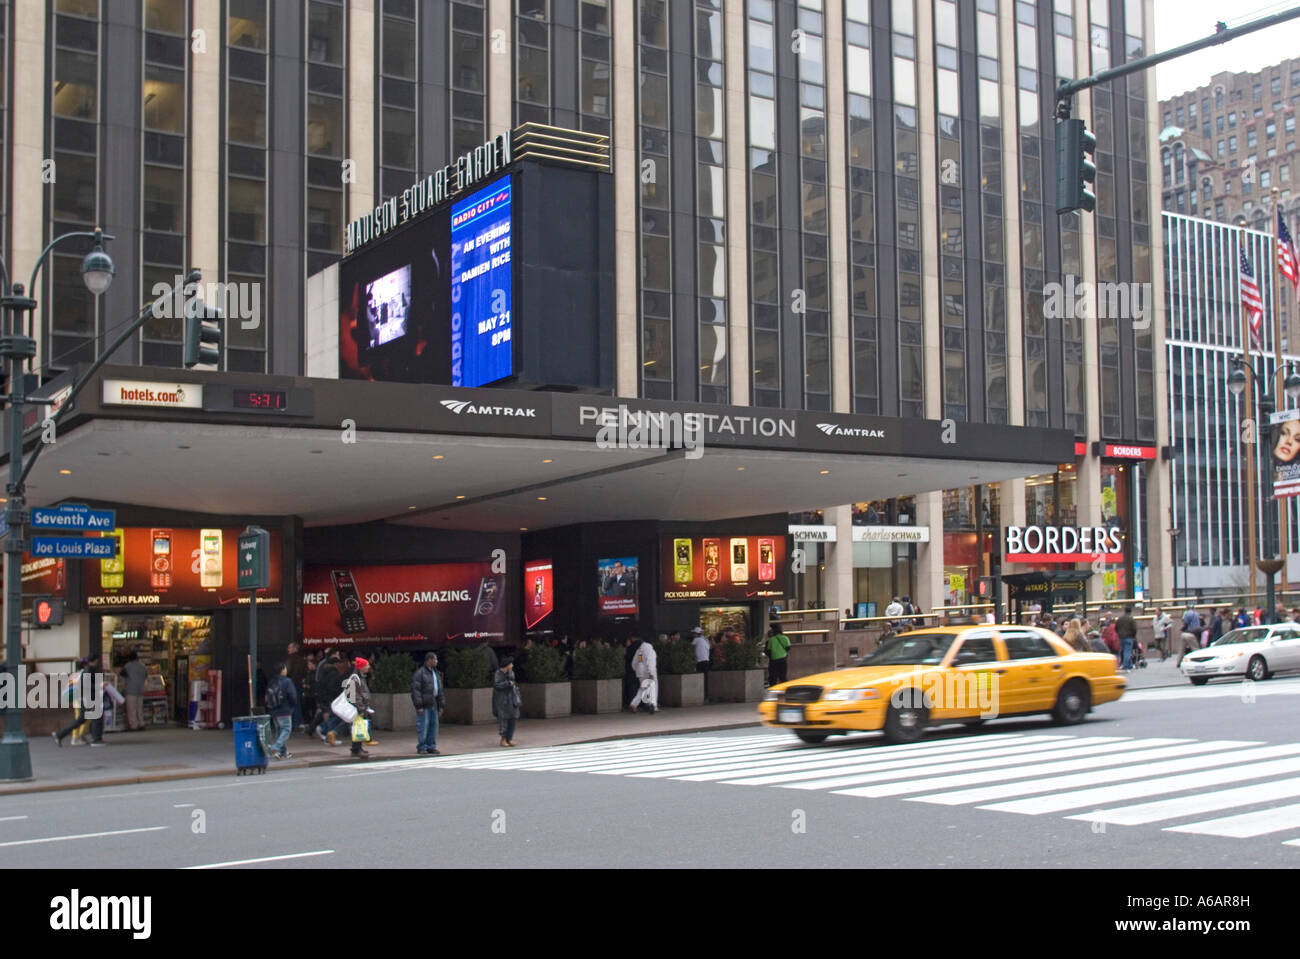 Penn Station And Madison Square Garden Seventh Avenue New York City Stock Photo Royalty Free